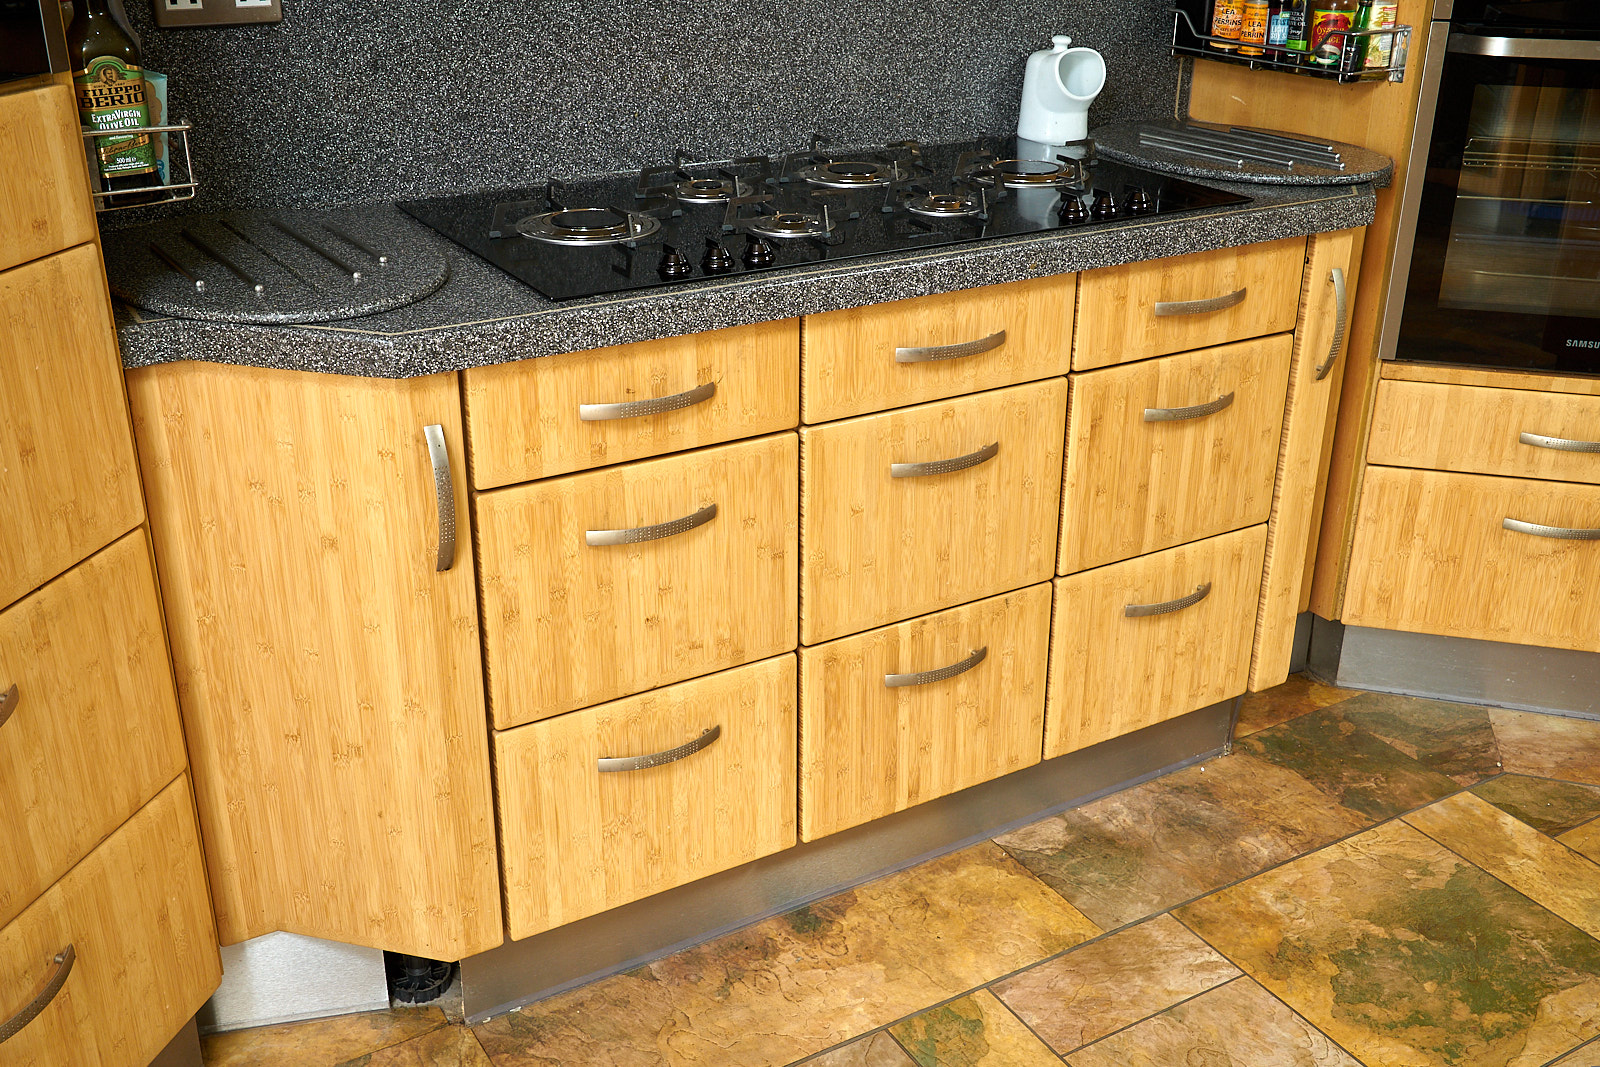 Last Chance To Buy 😄 Large German Used Kitchen Bamboo